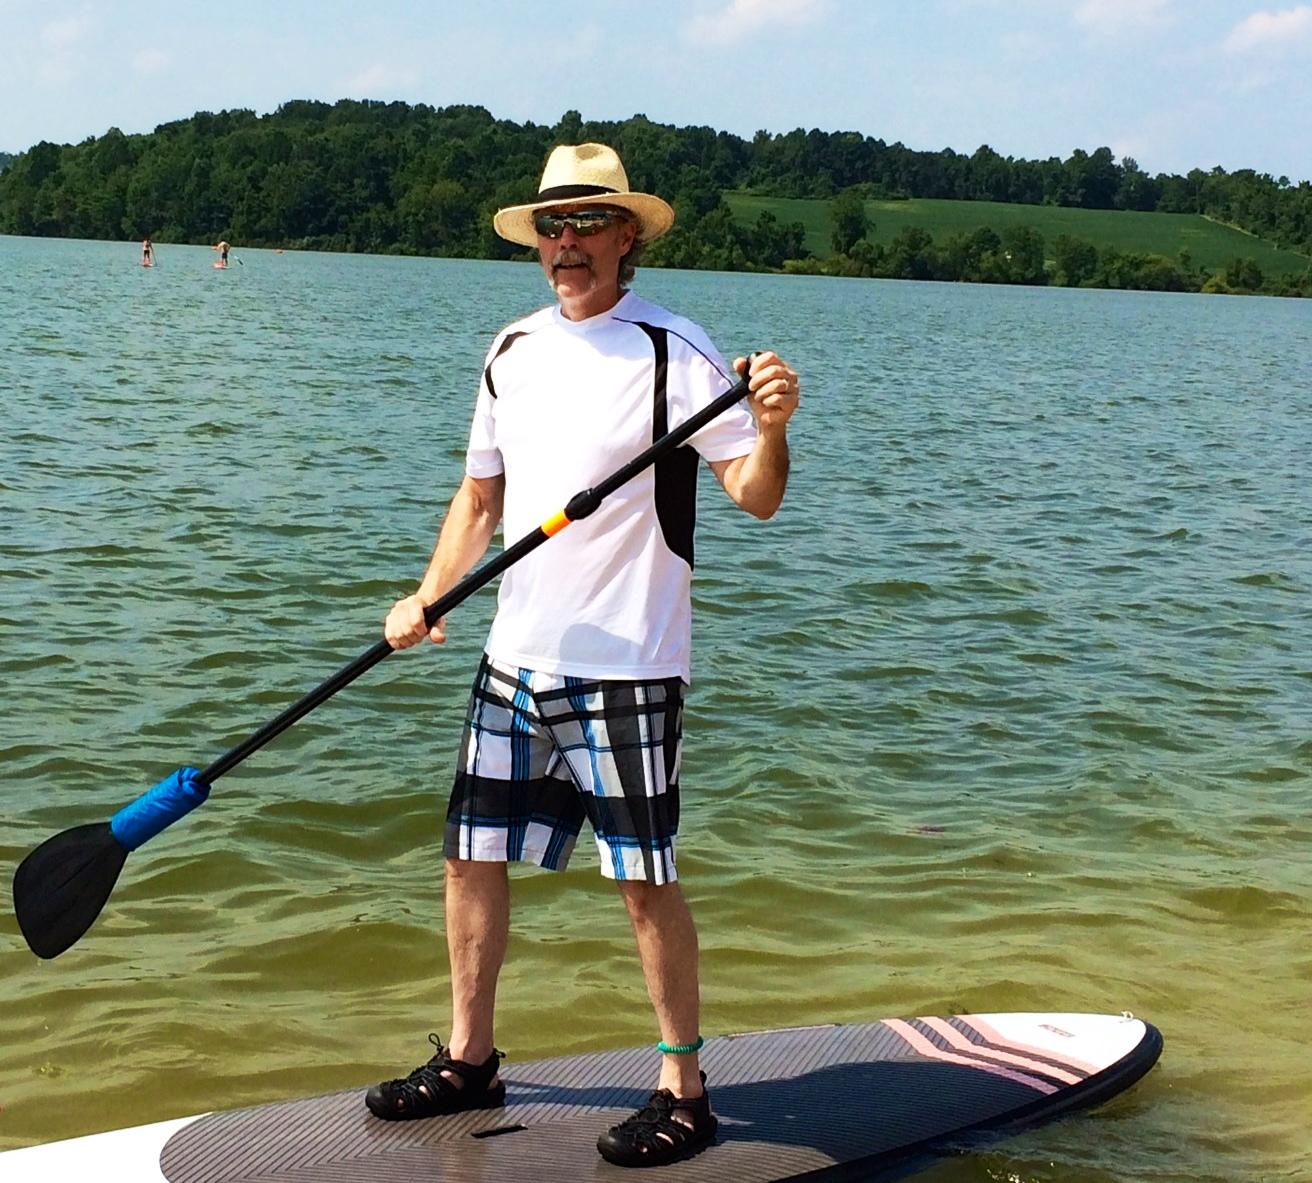 Tom - Working the paddle board out to deeper water